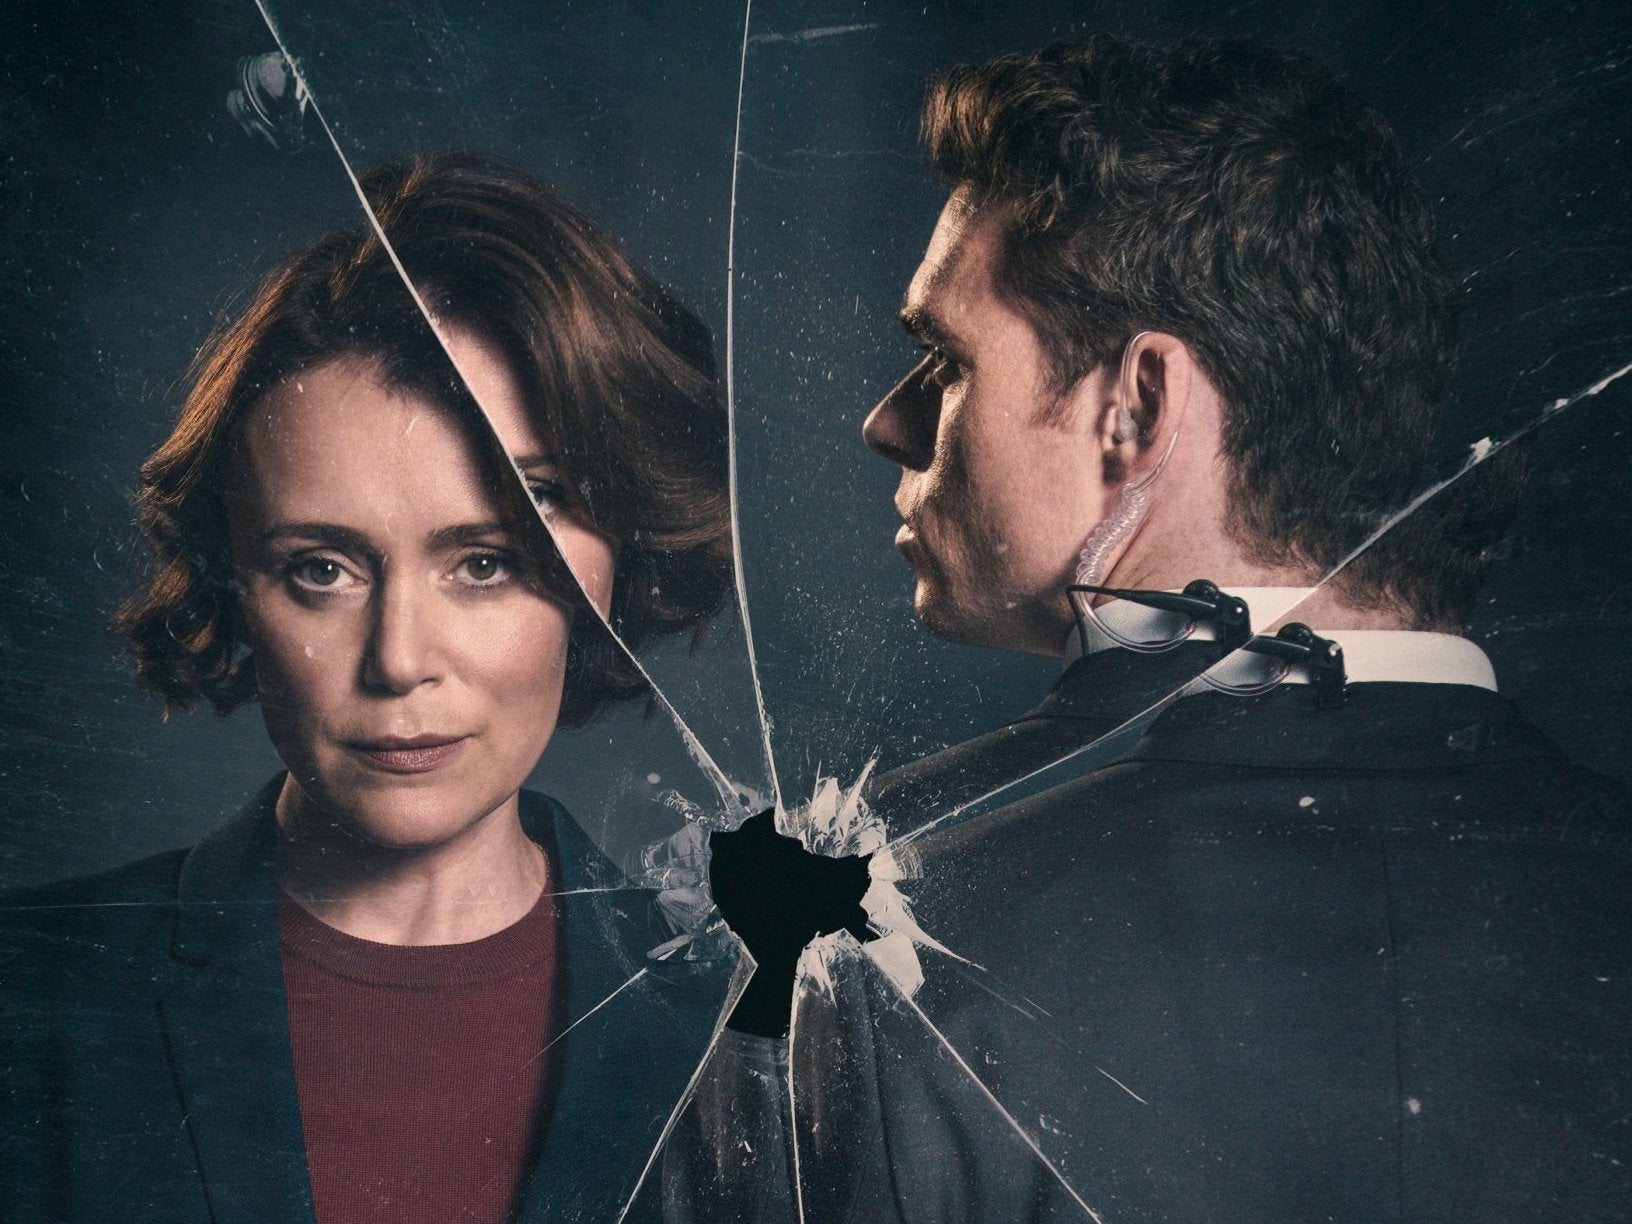 From 'Bodyguard' to 'The Count of Monte Cristo', these are the key ingredients of a perfect thriller